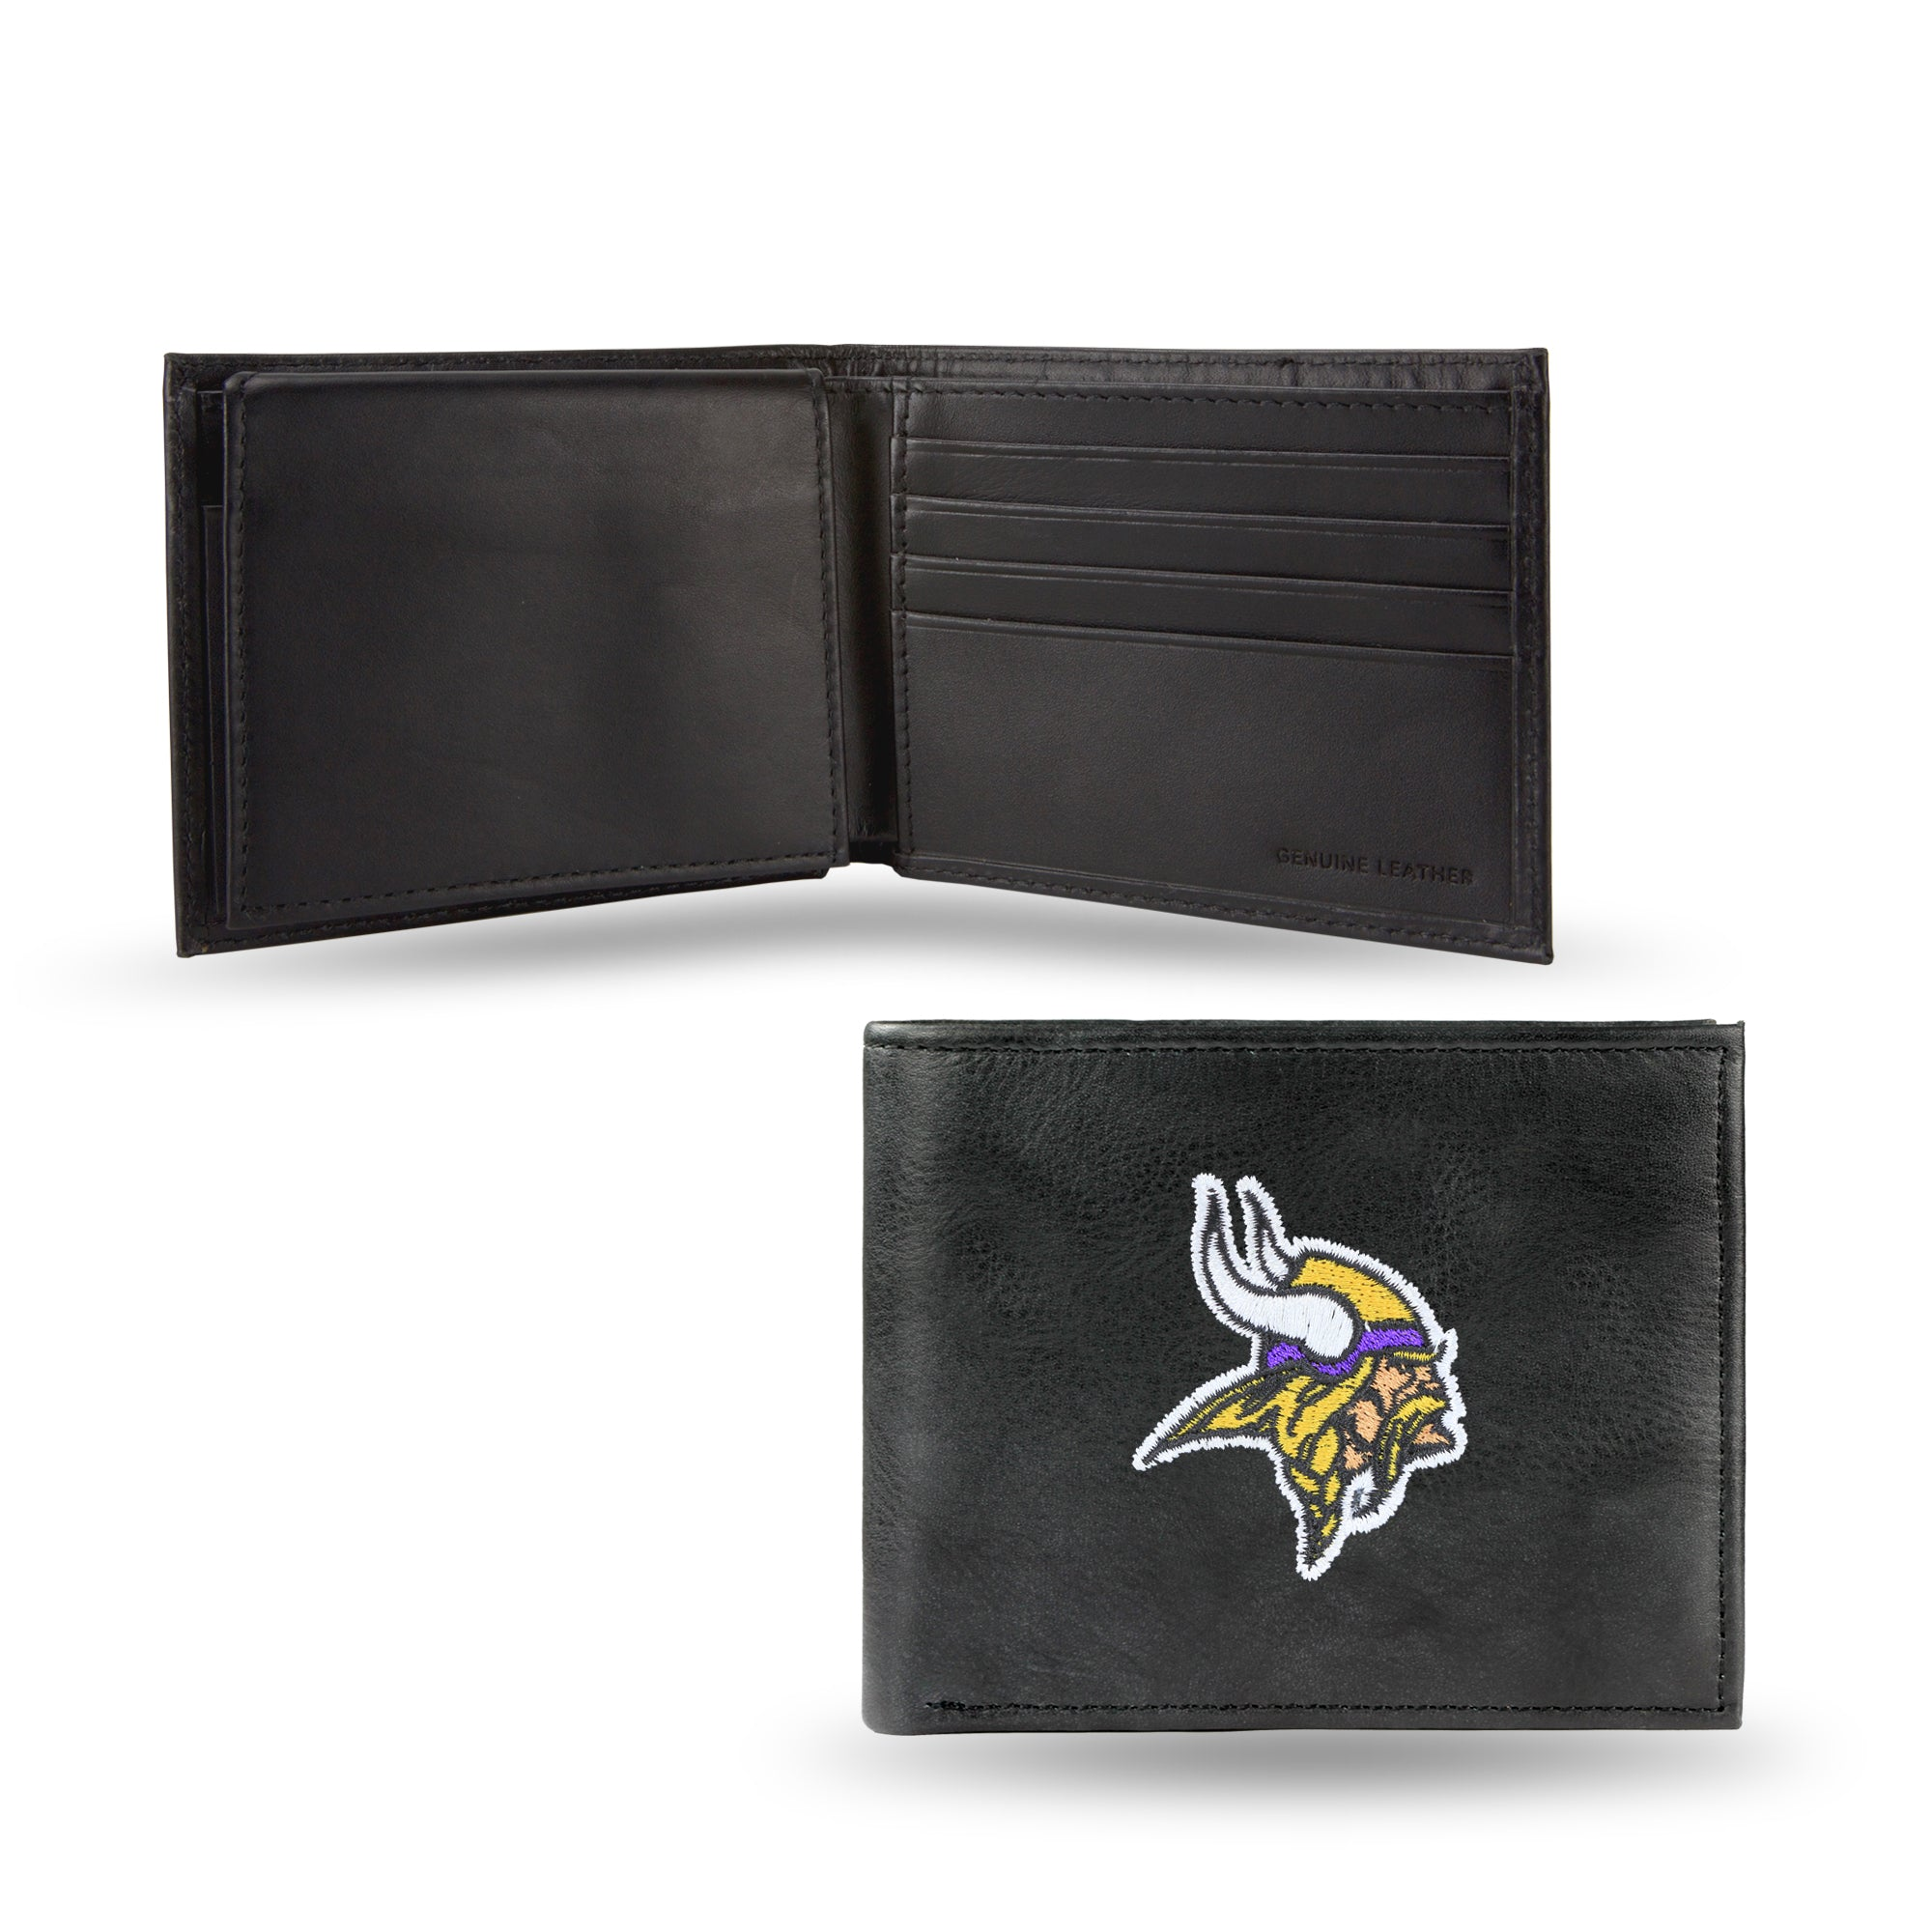 NFL Minnesota Vikings Embroidered Billfold / Wallet